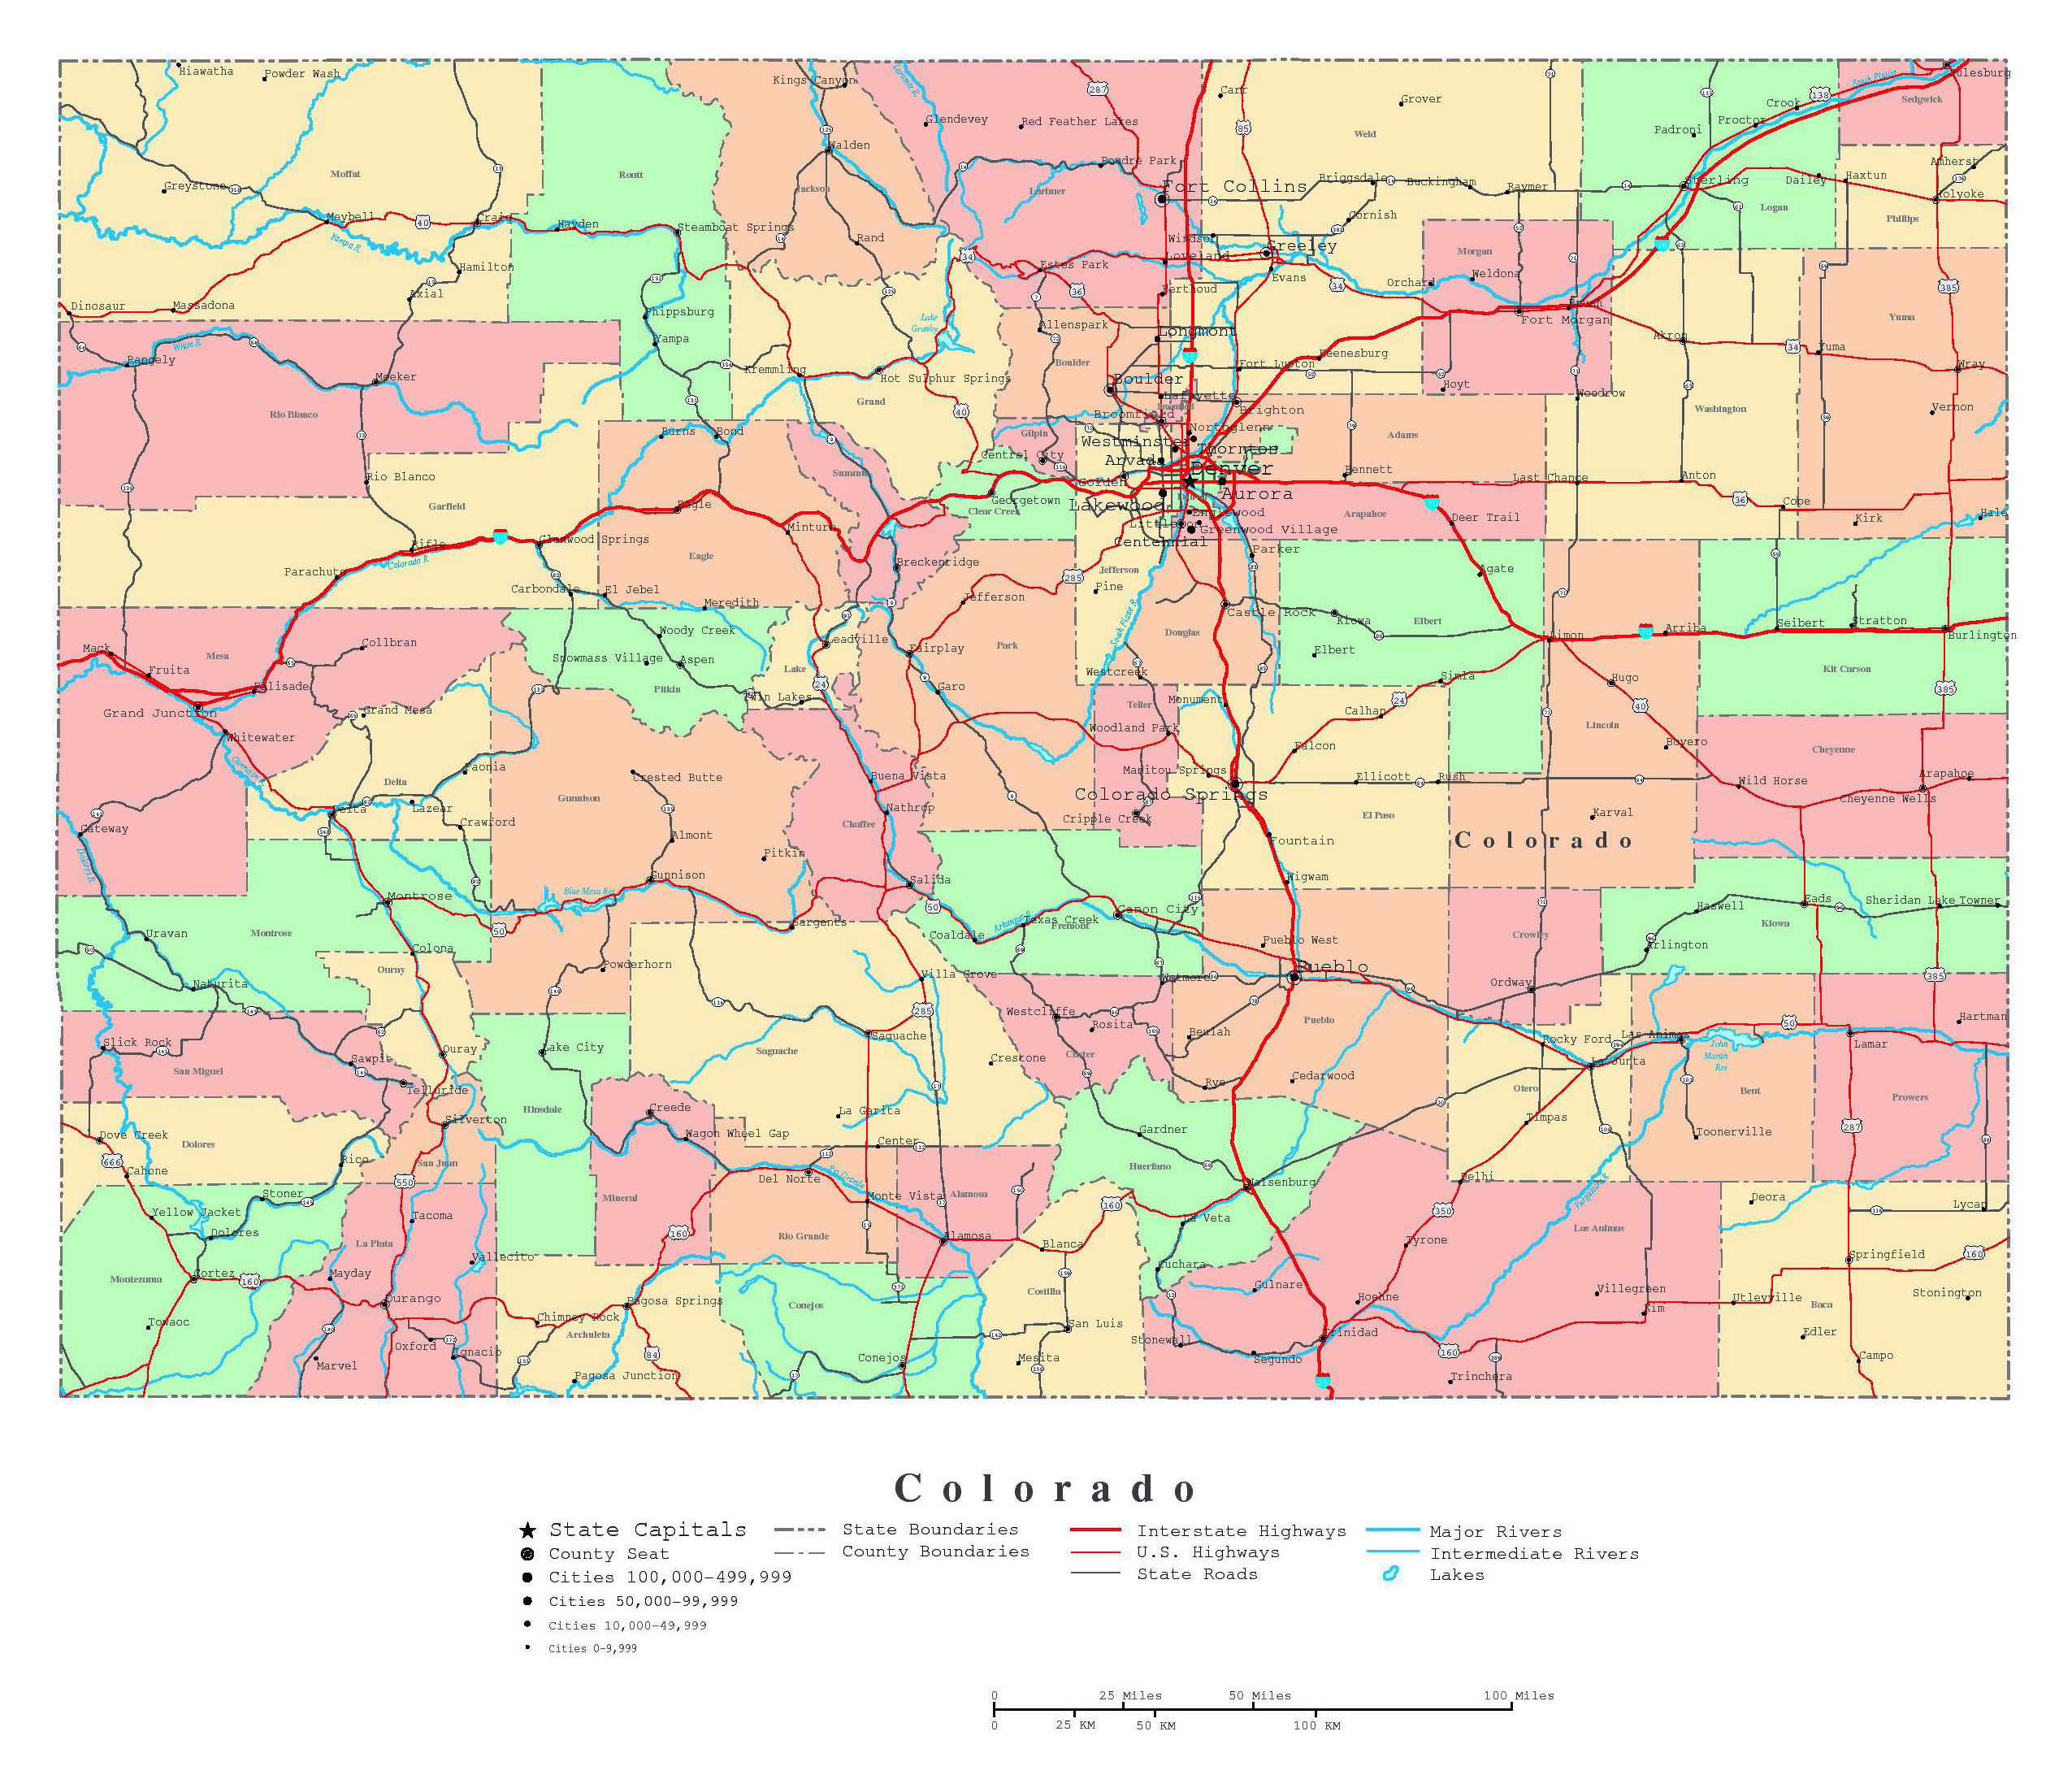 Large Detailed Administrative Map Of Colorado State With Roads - Maps of colorado cities